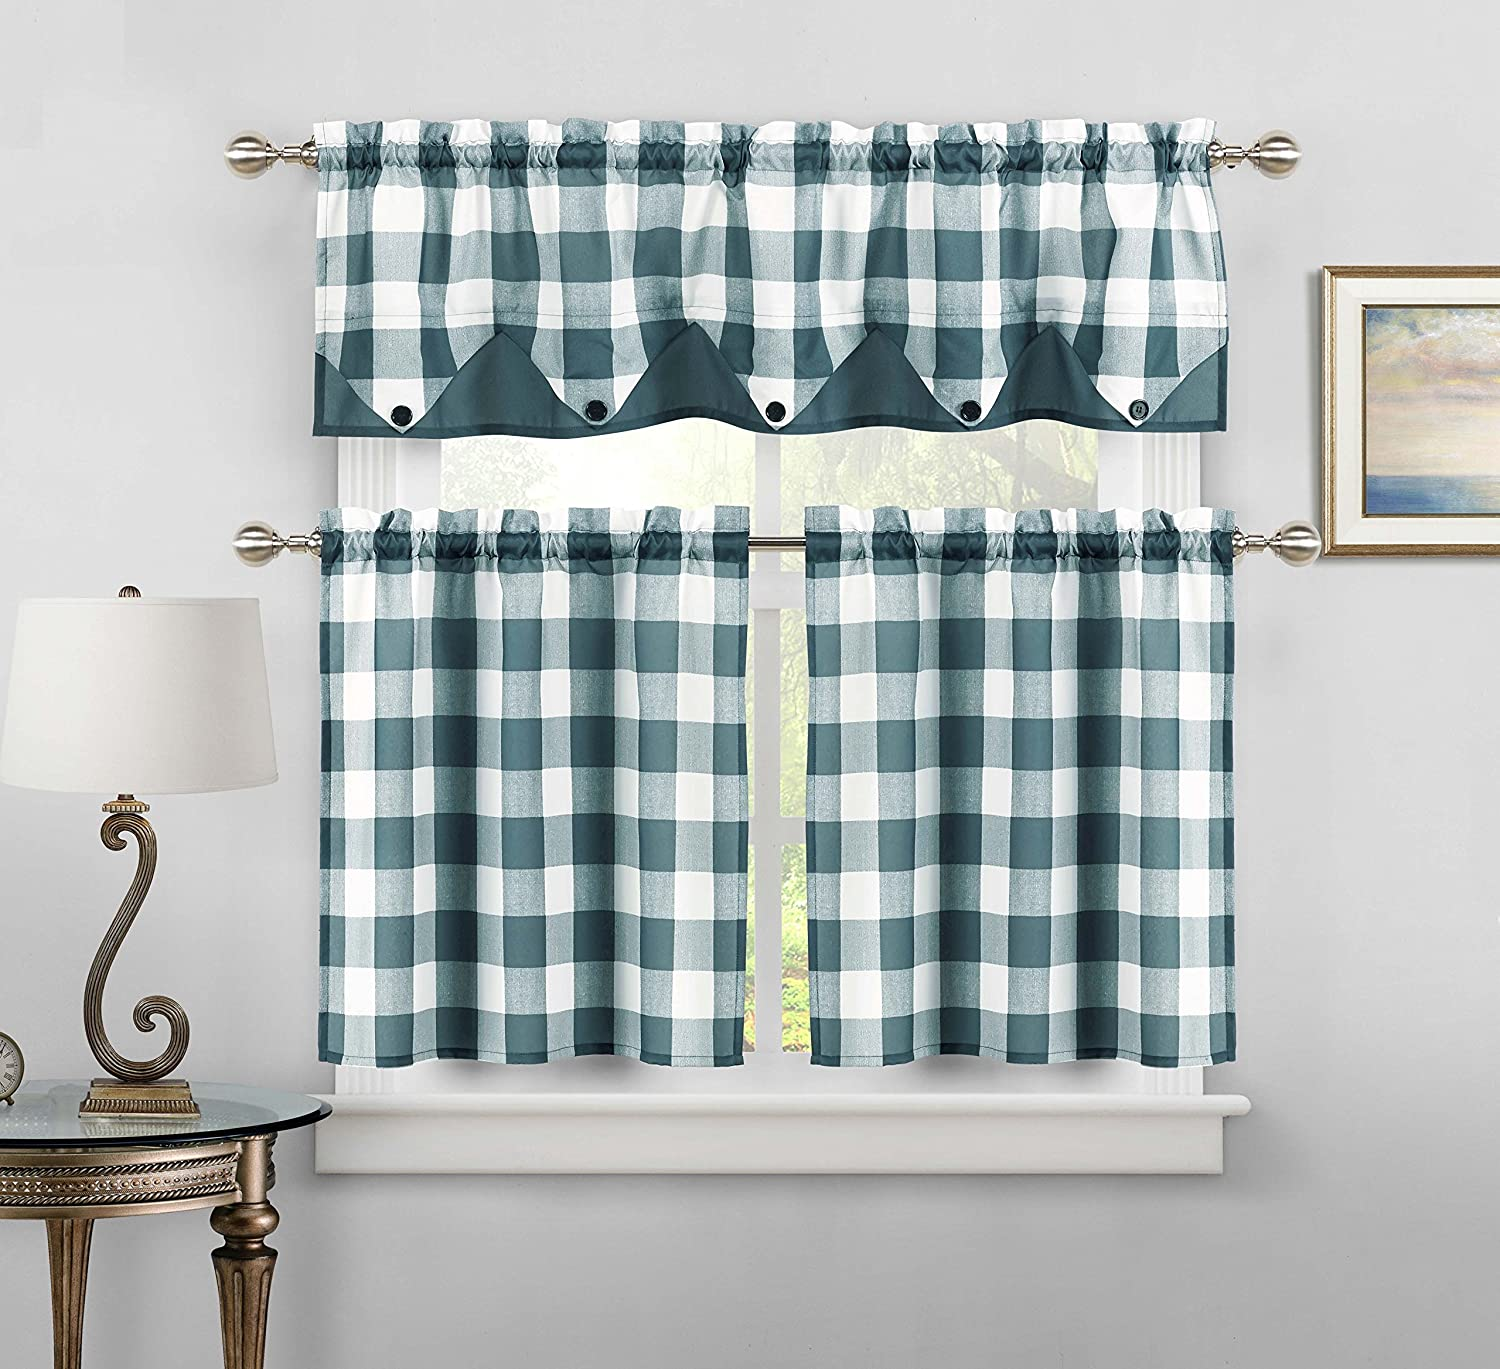 Sheer Small Taupe and White Three Piece Kitchen/Cafe Tier Window Curtain  Set Gingham Check Pattern, 1 Valance, 2 Tiers 24inch L (Taupe and White)